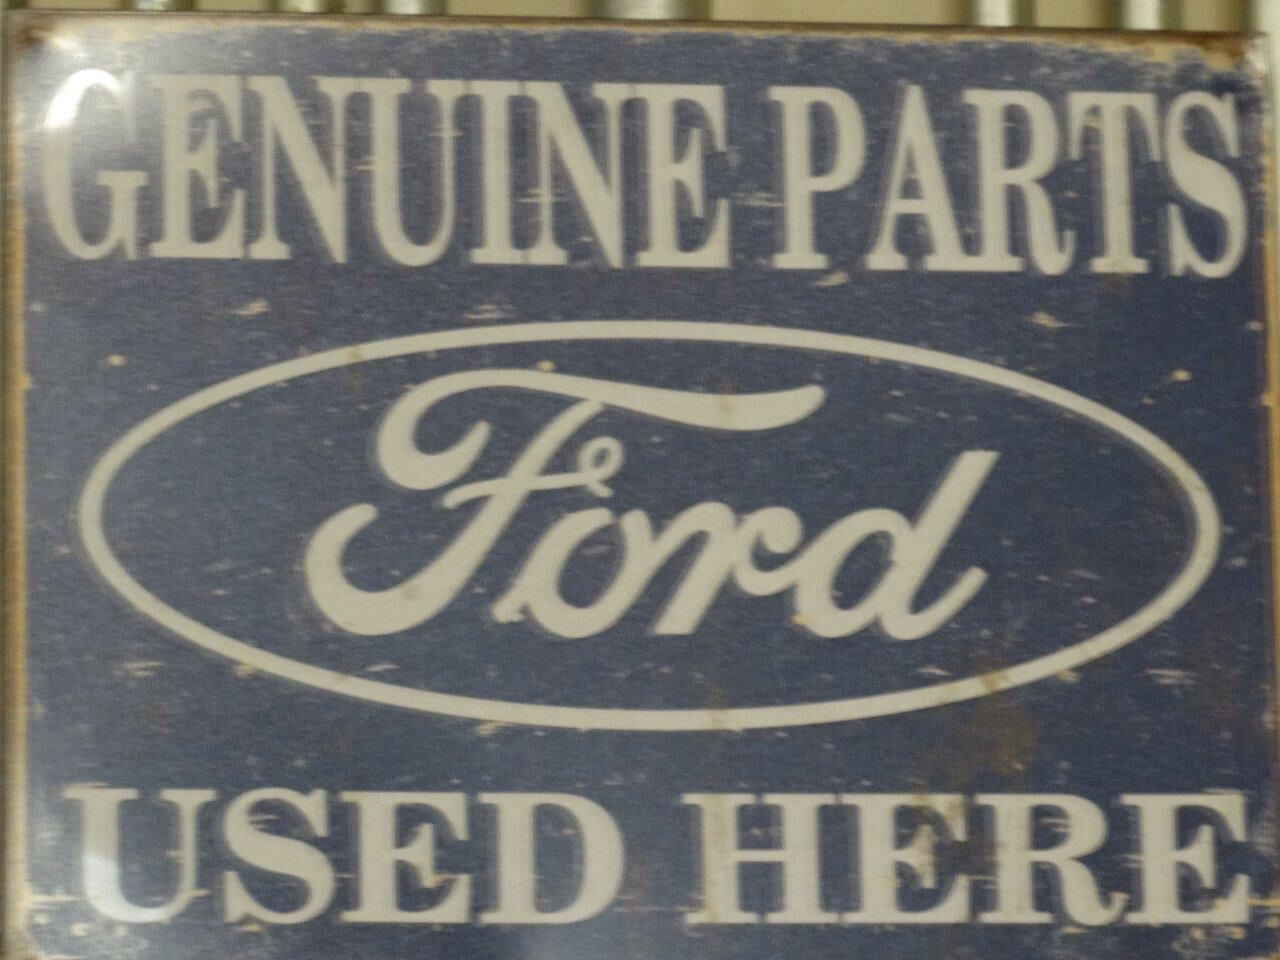 Vintage Ford parts sign at Crevier Classic Cars | Garage | Pinterest ...